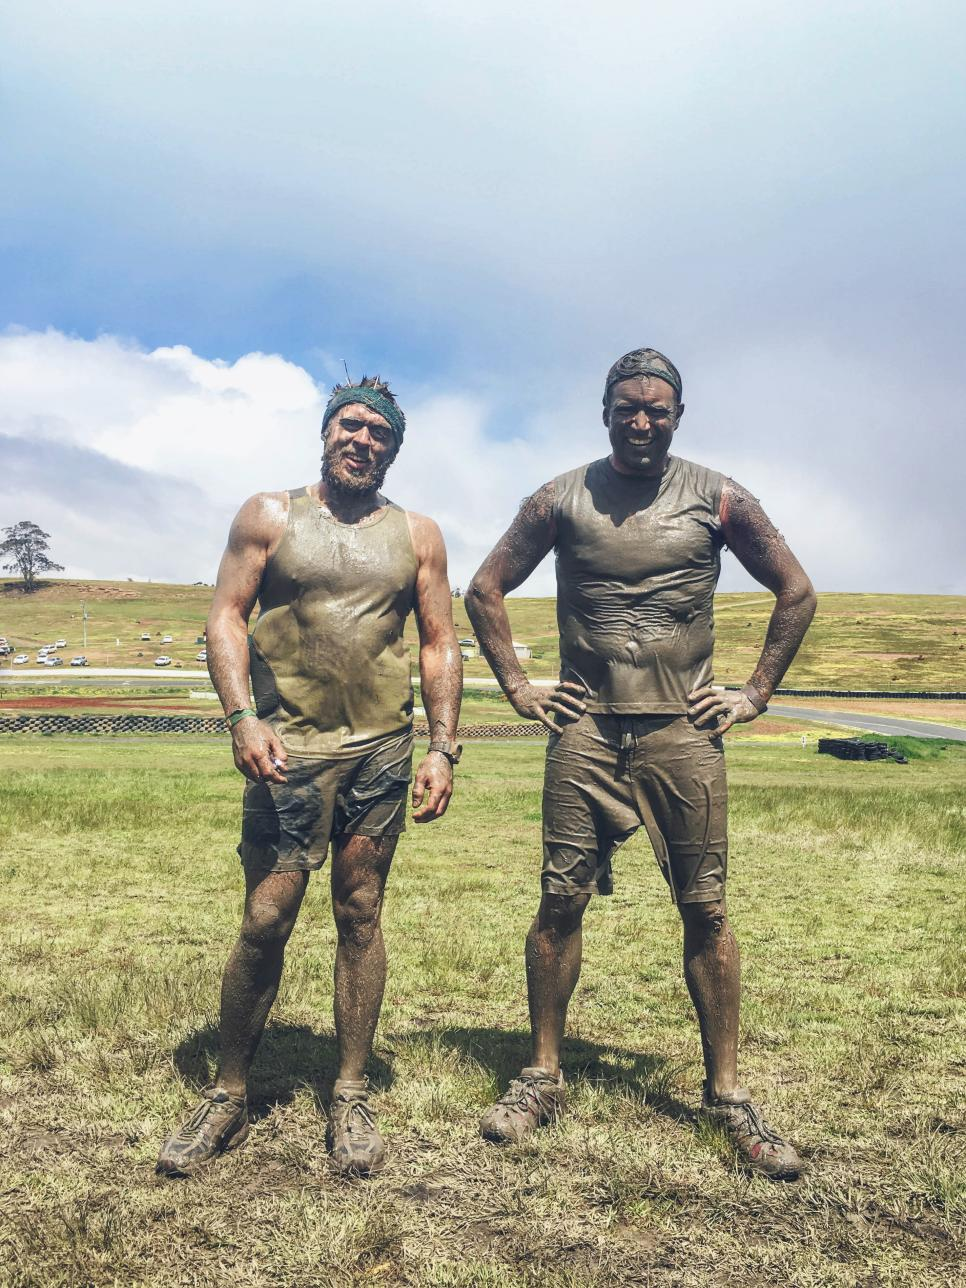 Two happy men standing together after completing a mud run challenge